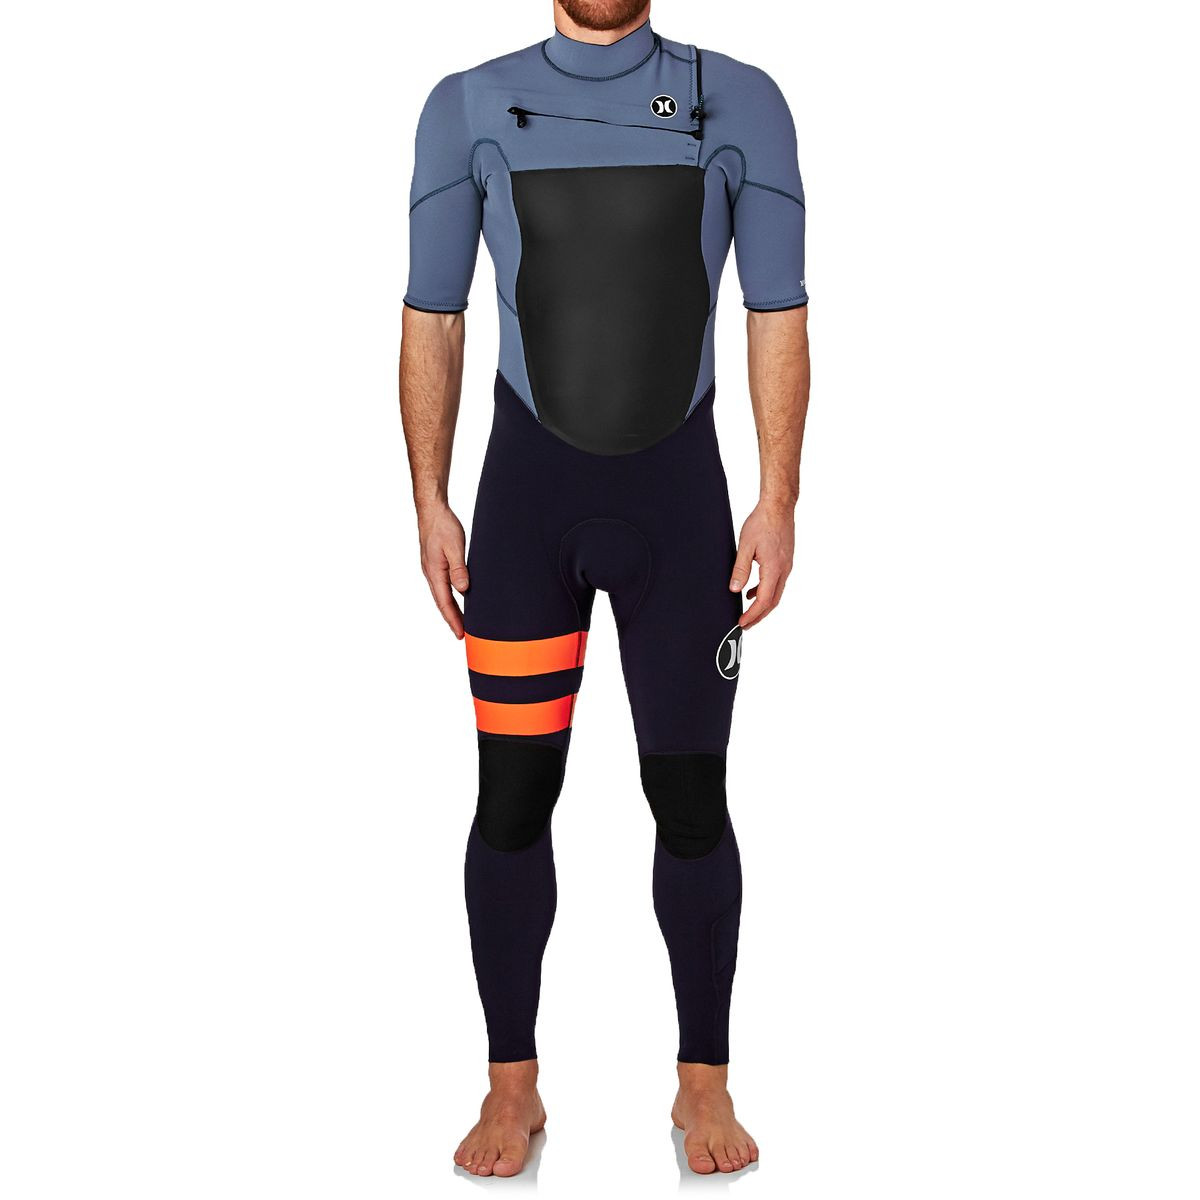 Hurley Fusion 2mm 2017 Chest Zip Short Sleeve Wetsuit - Obsidian